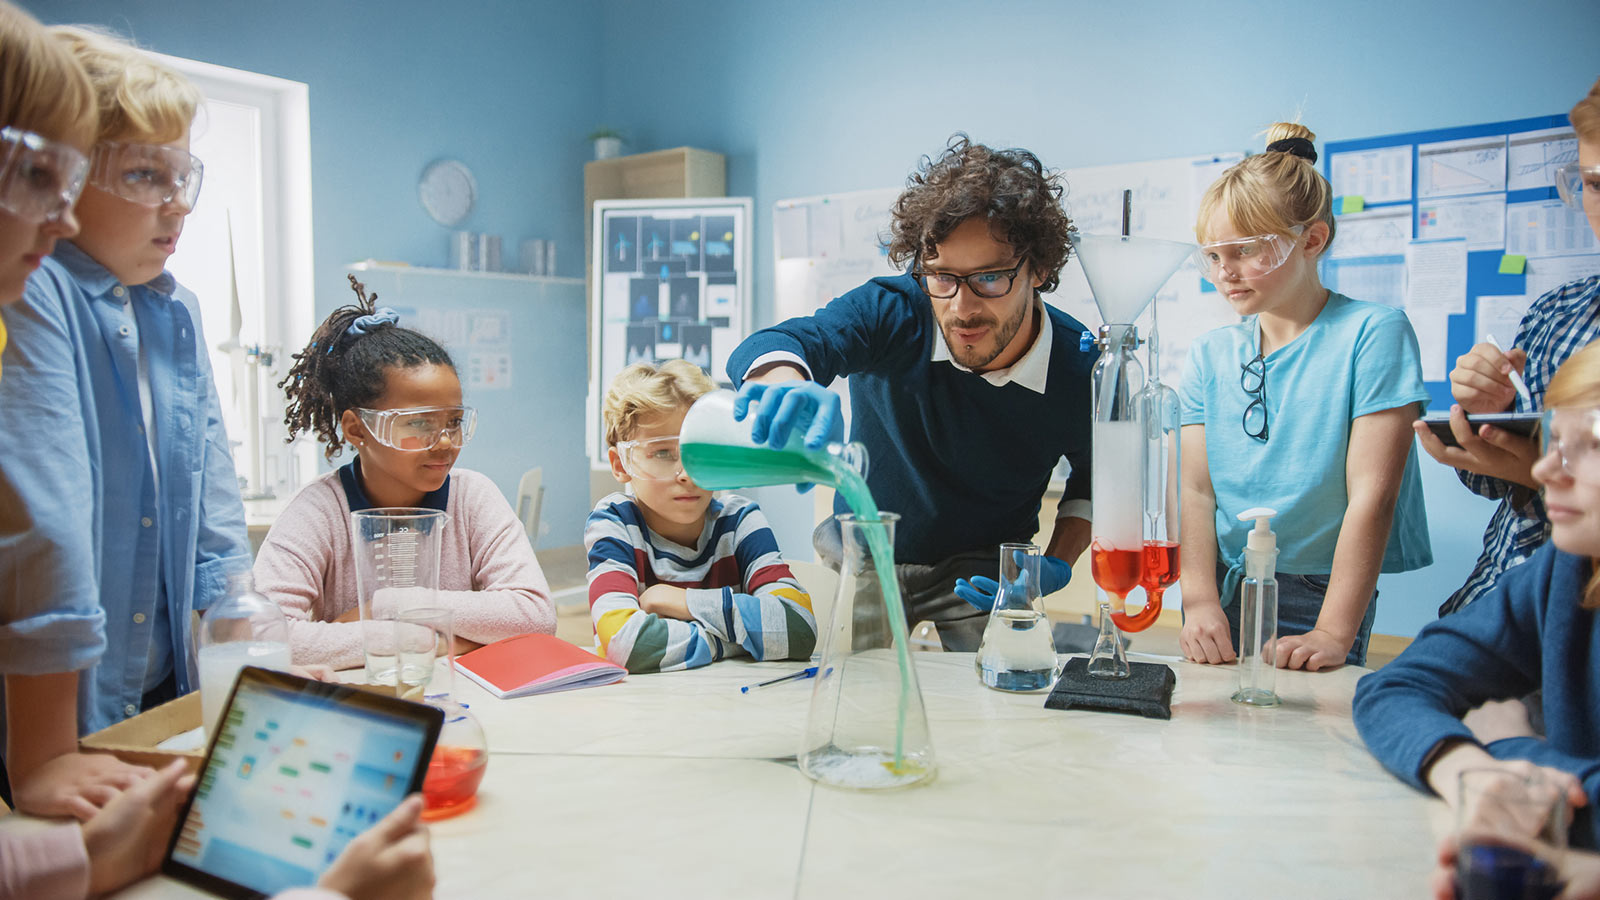 Image of a teacher and students in a classroom laboratory